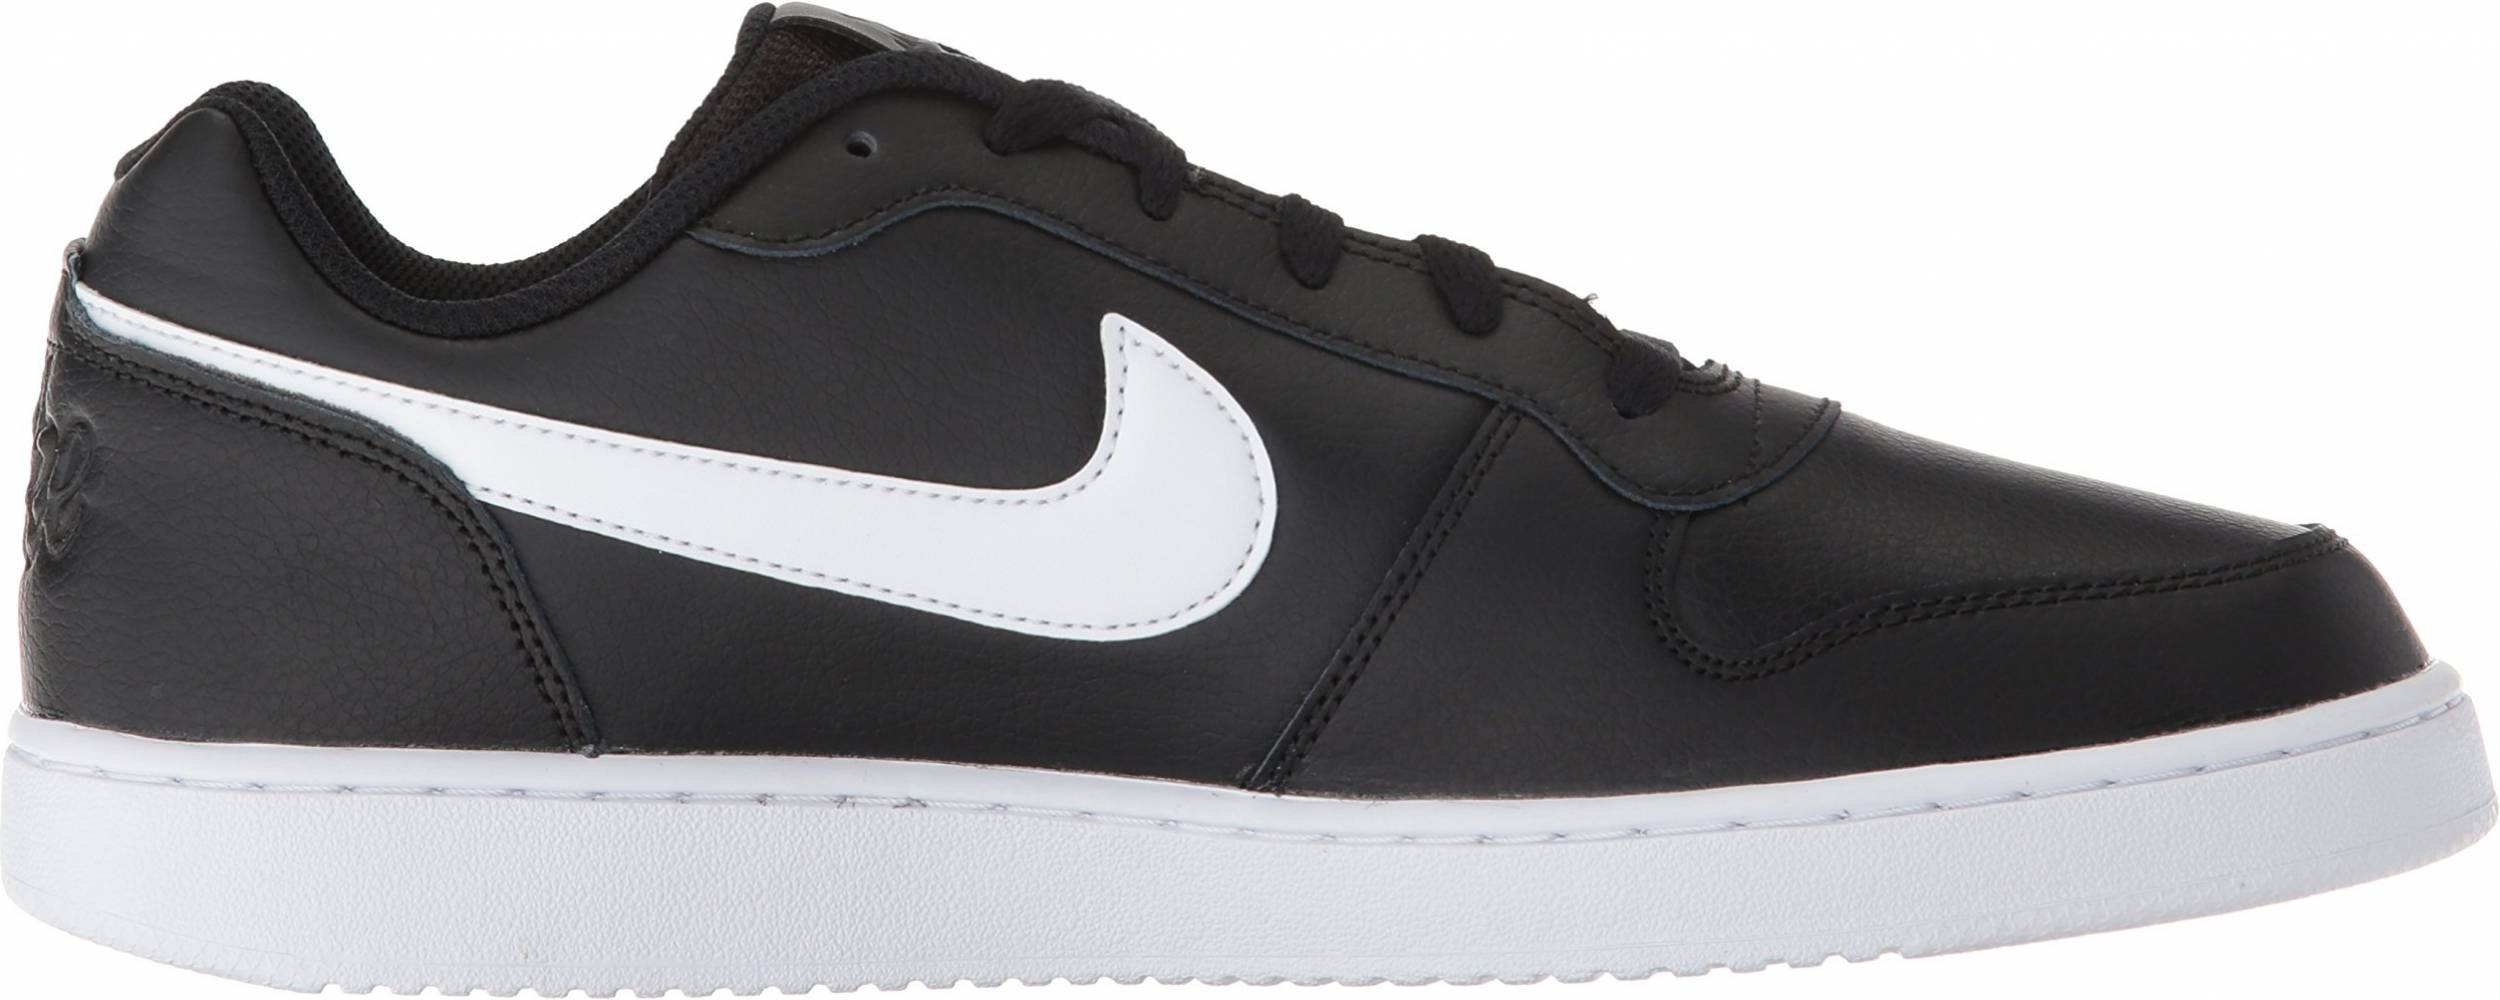 Only £36 + Review of Nike Ebernon Low